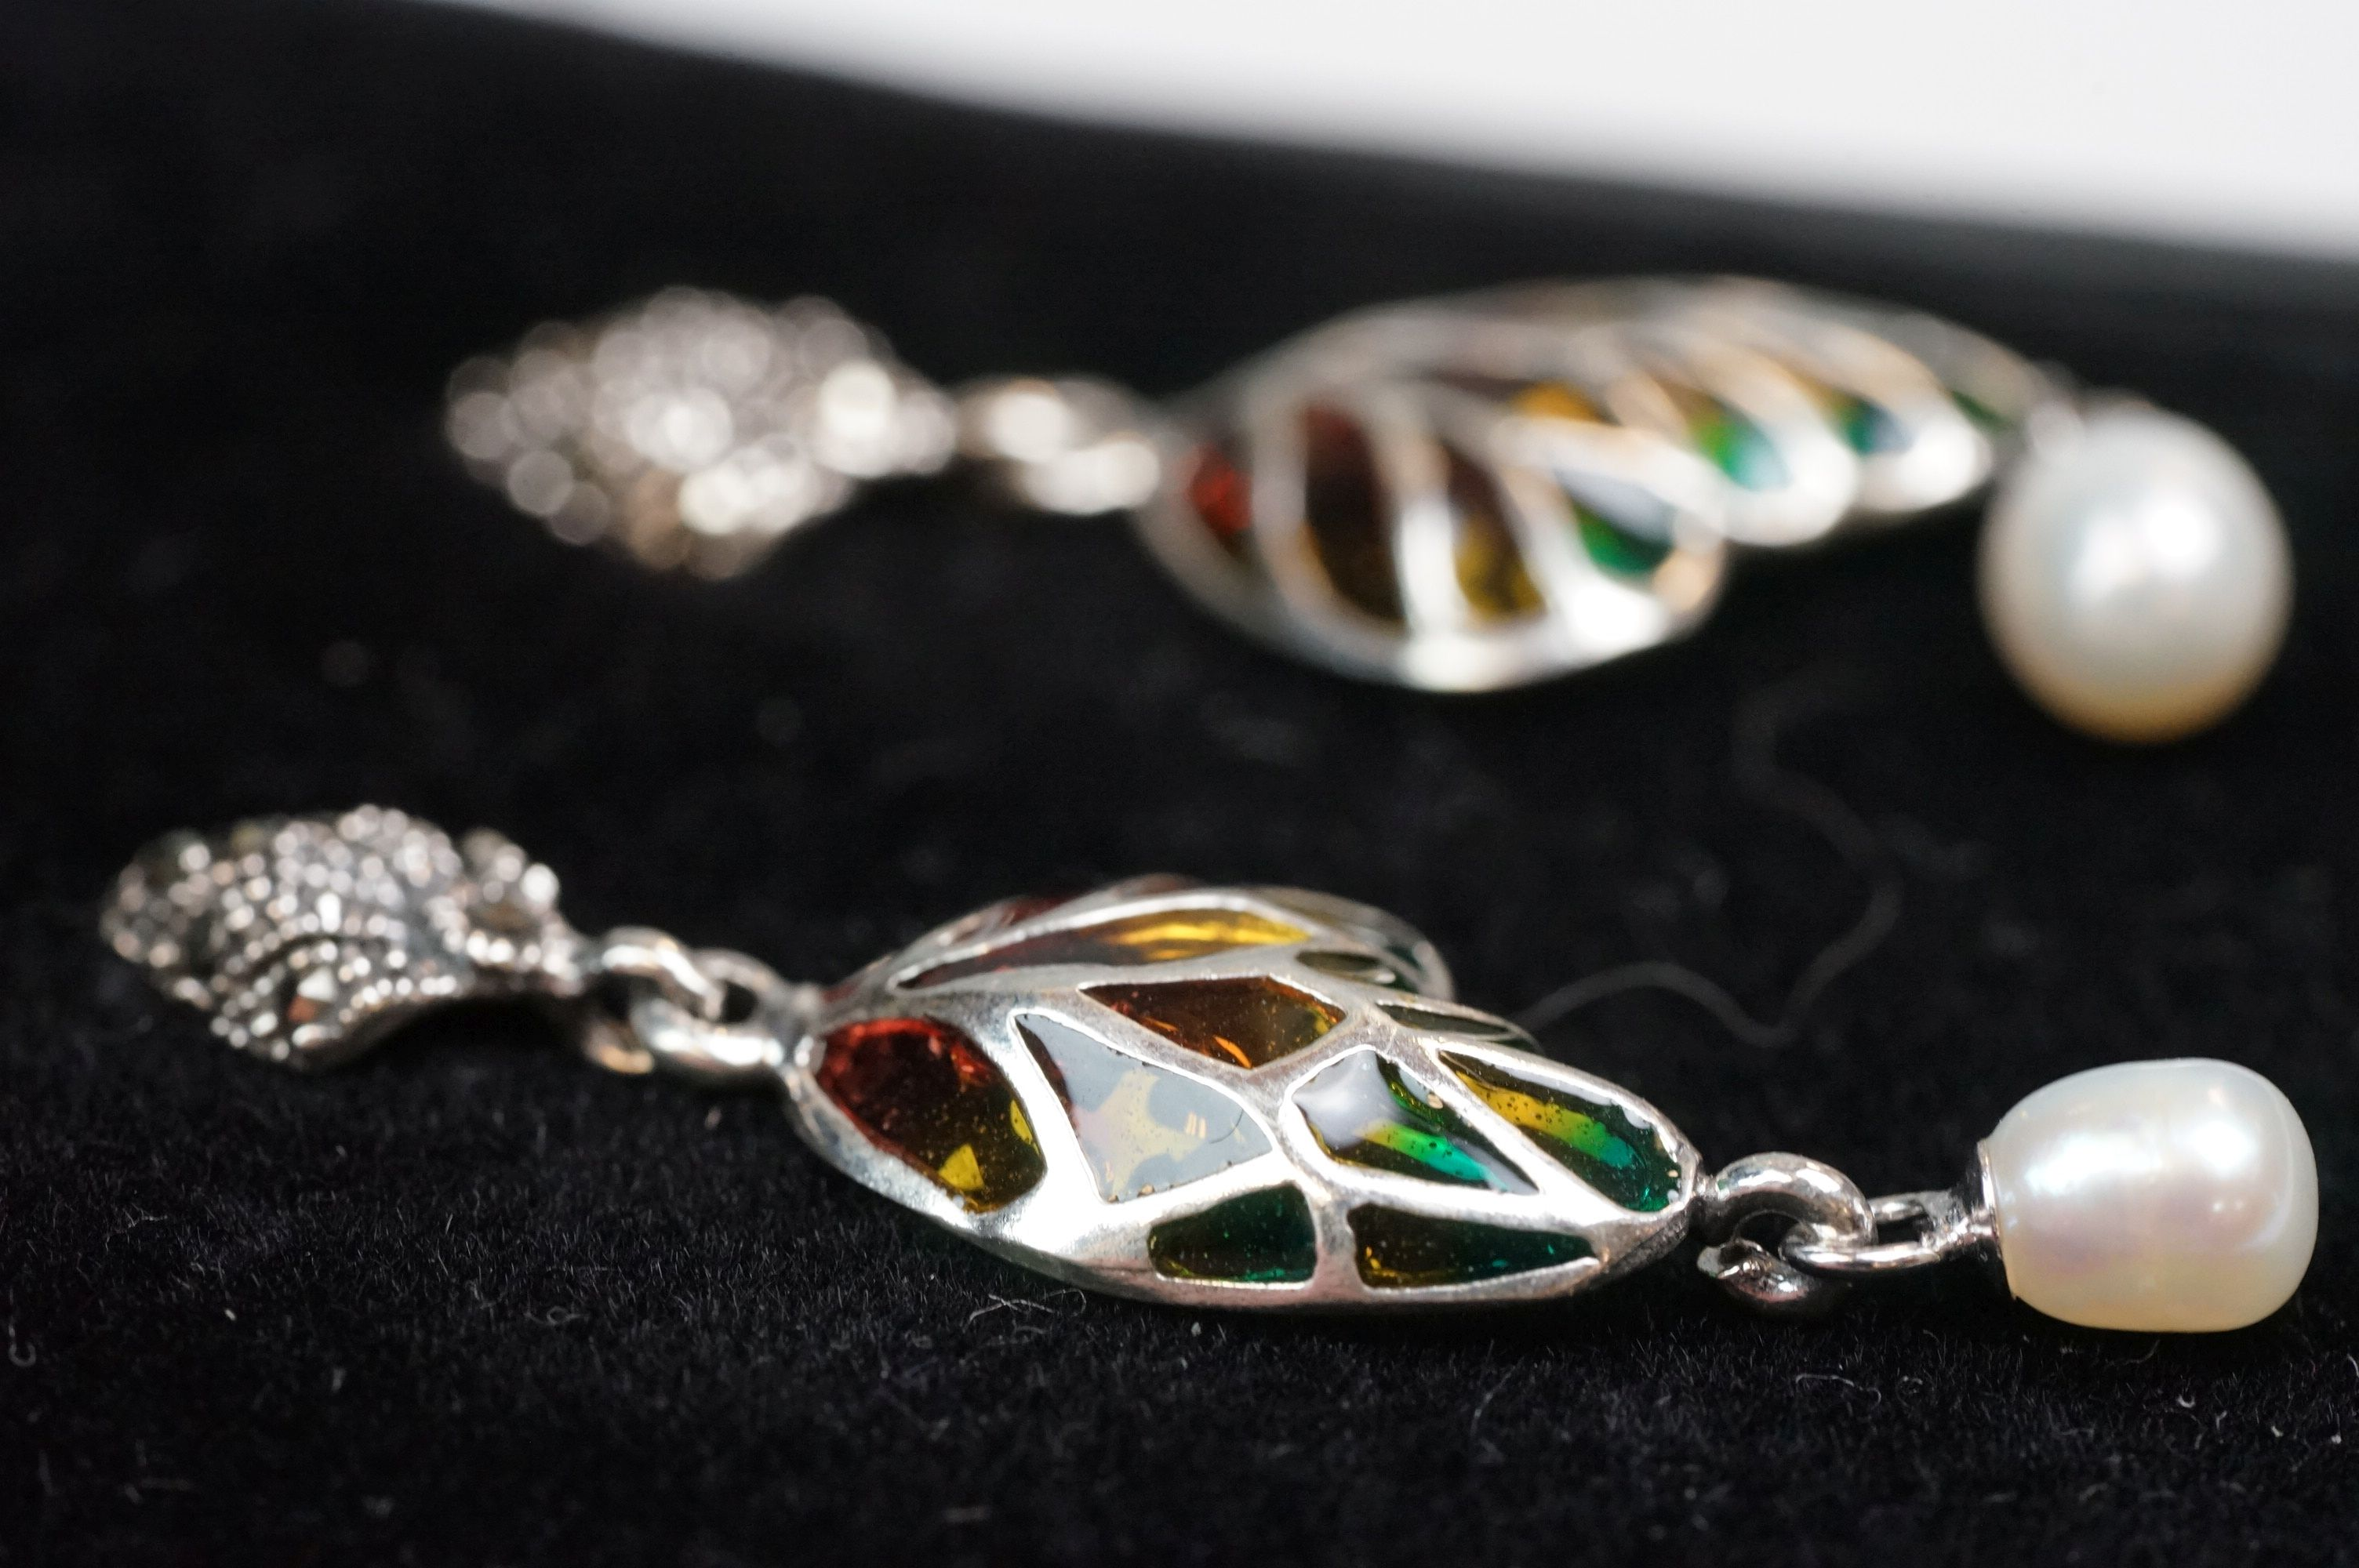 Pair of silver plique-a-jour drop earrings - Image 3 of 4